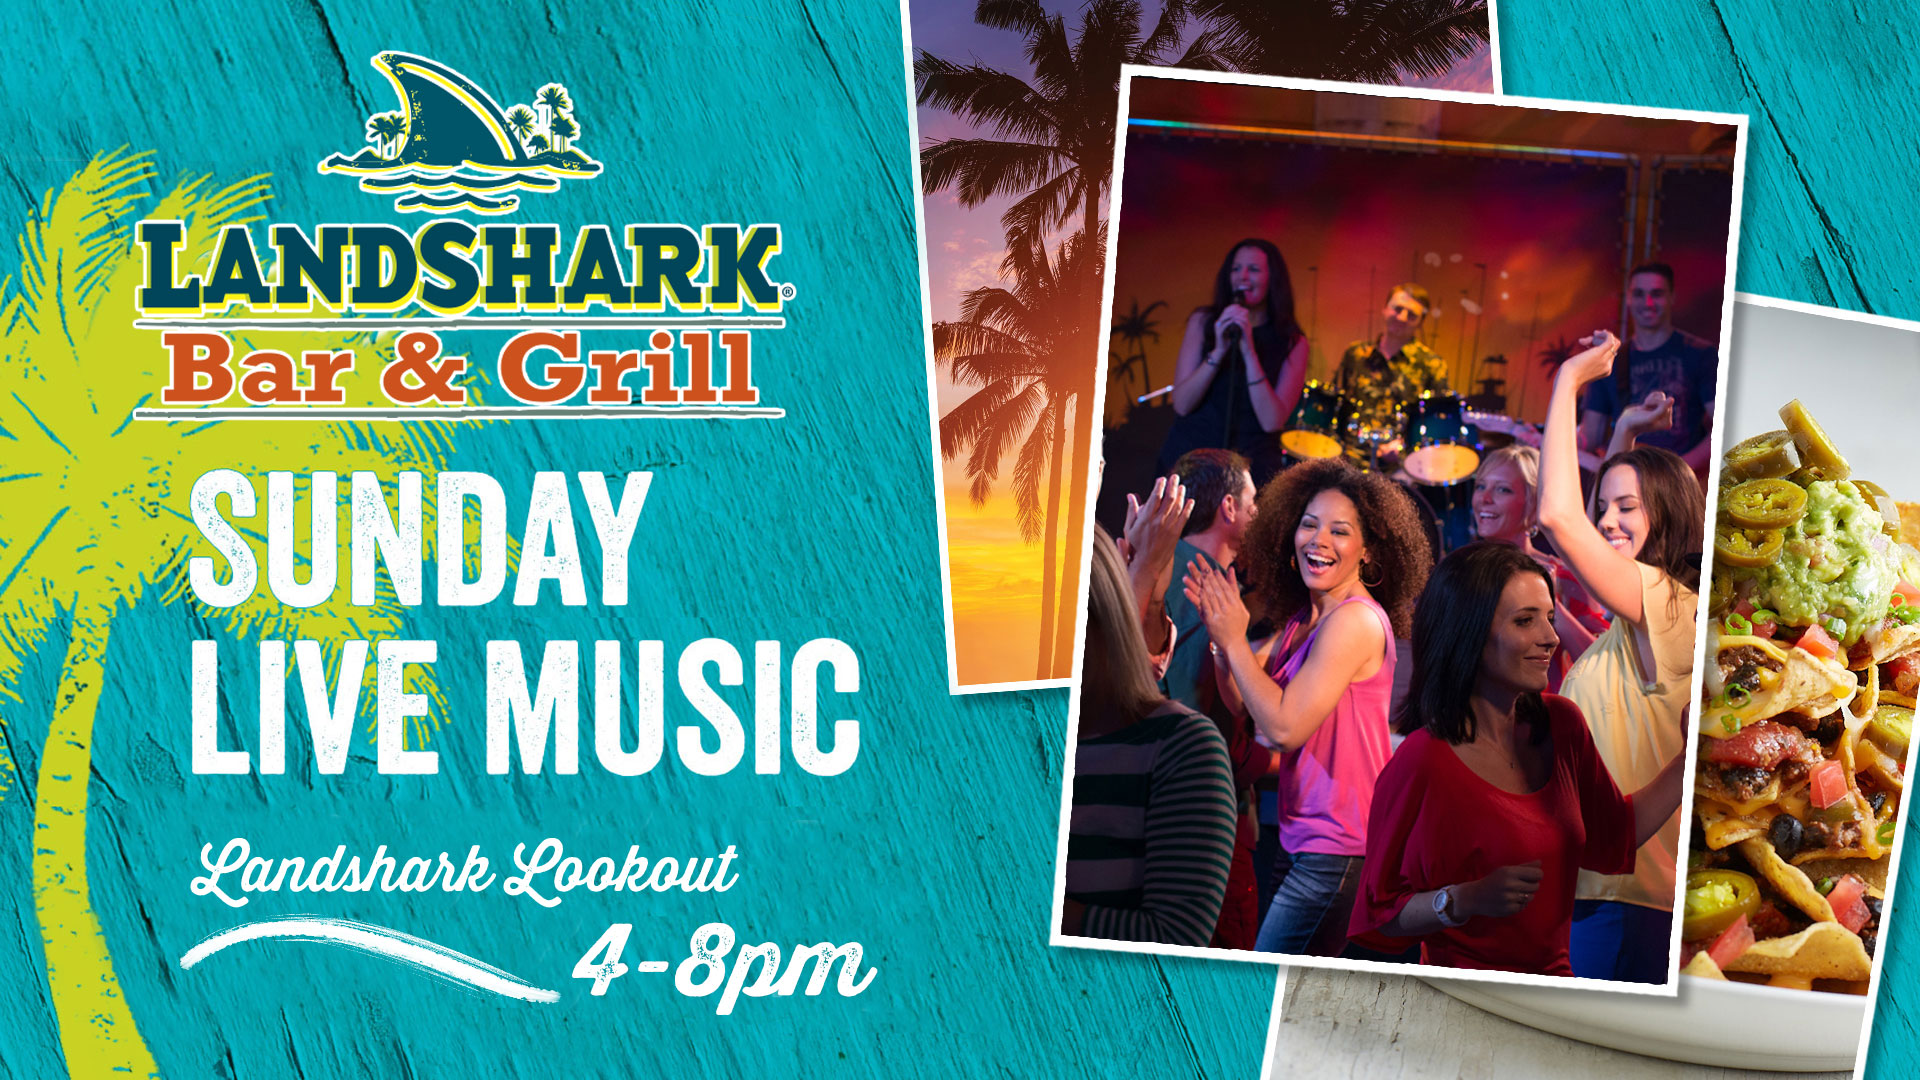 Sunday Live Music at the Landshark Bar and Grill.